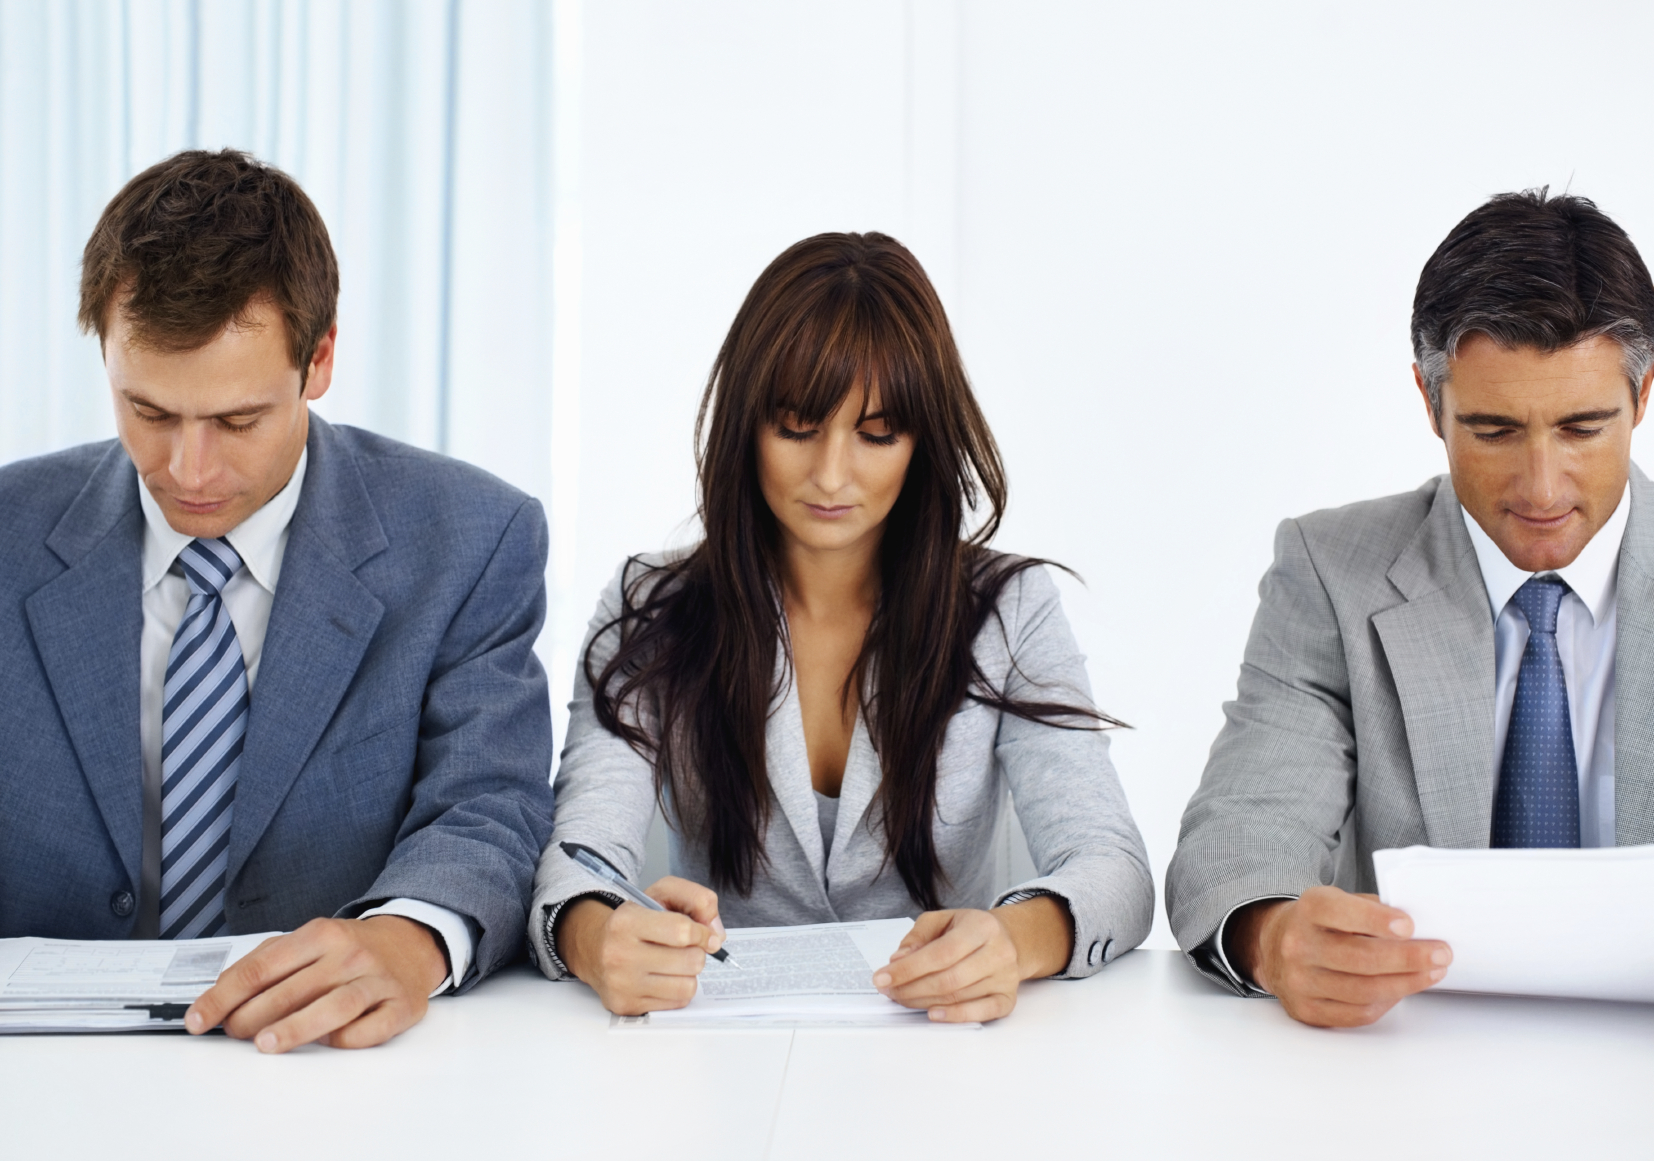 Three business people analyzing documents